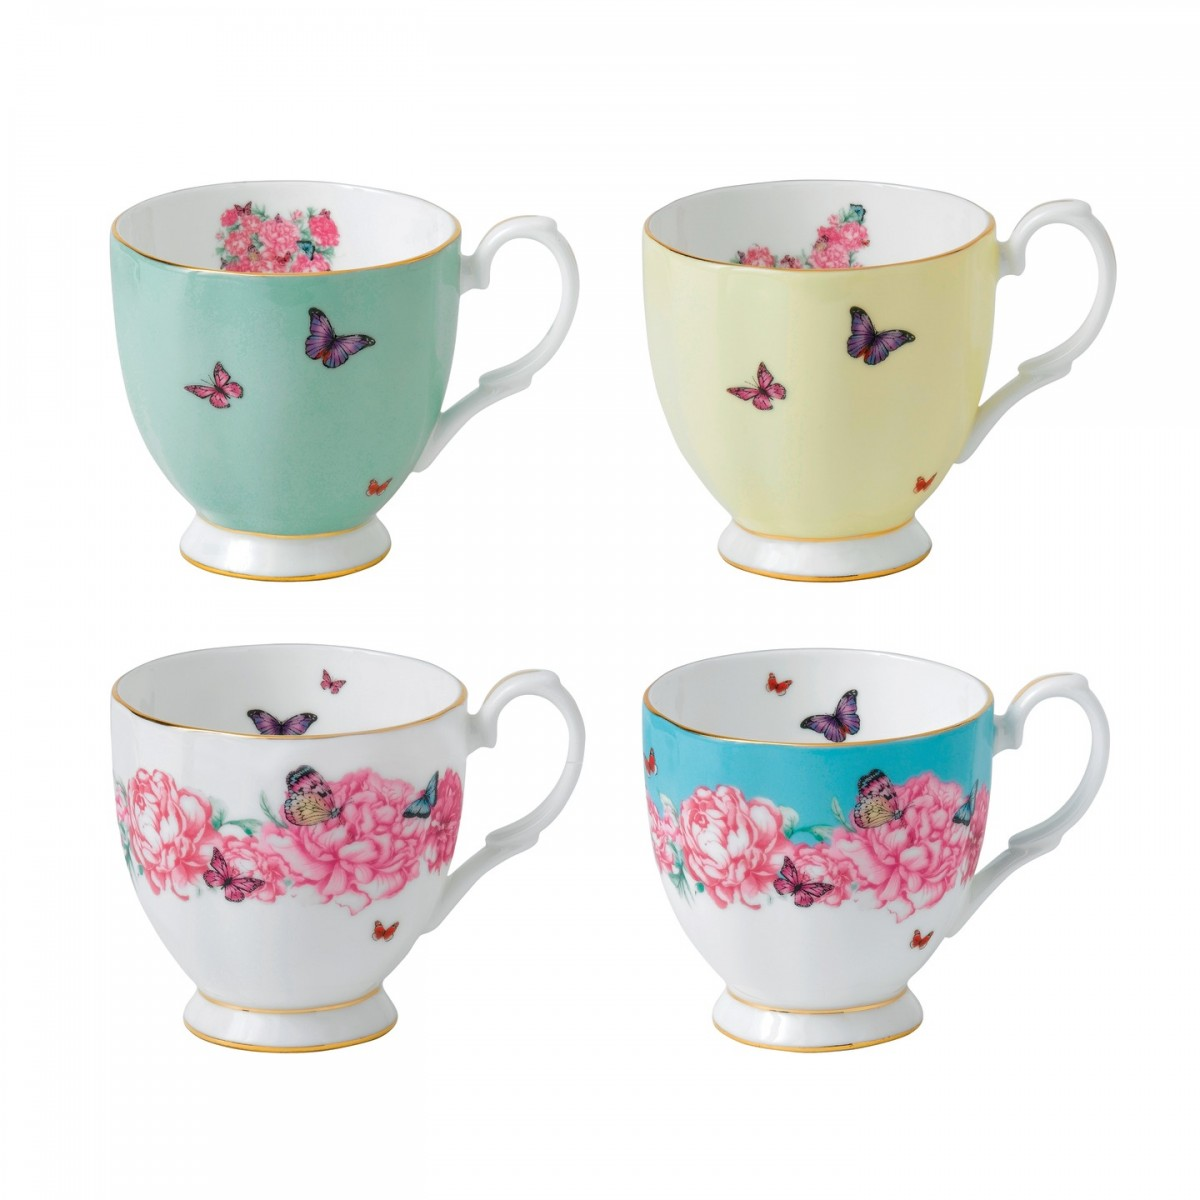 royal-albert-vintage-mugs-set-of-4-701587230988_1